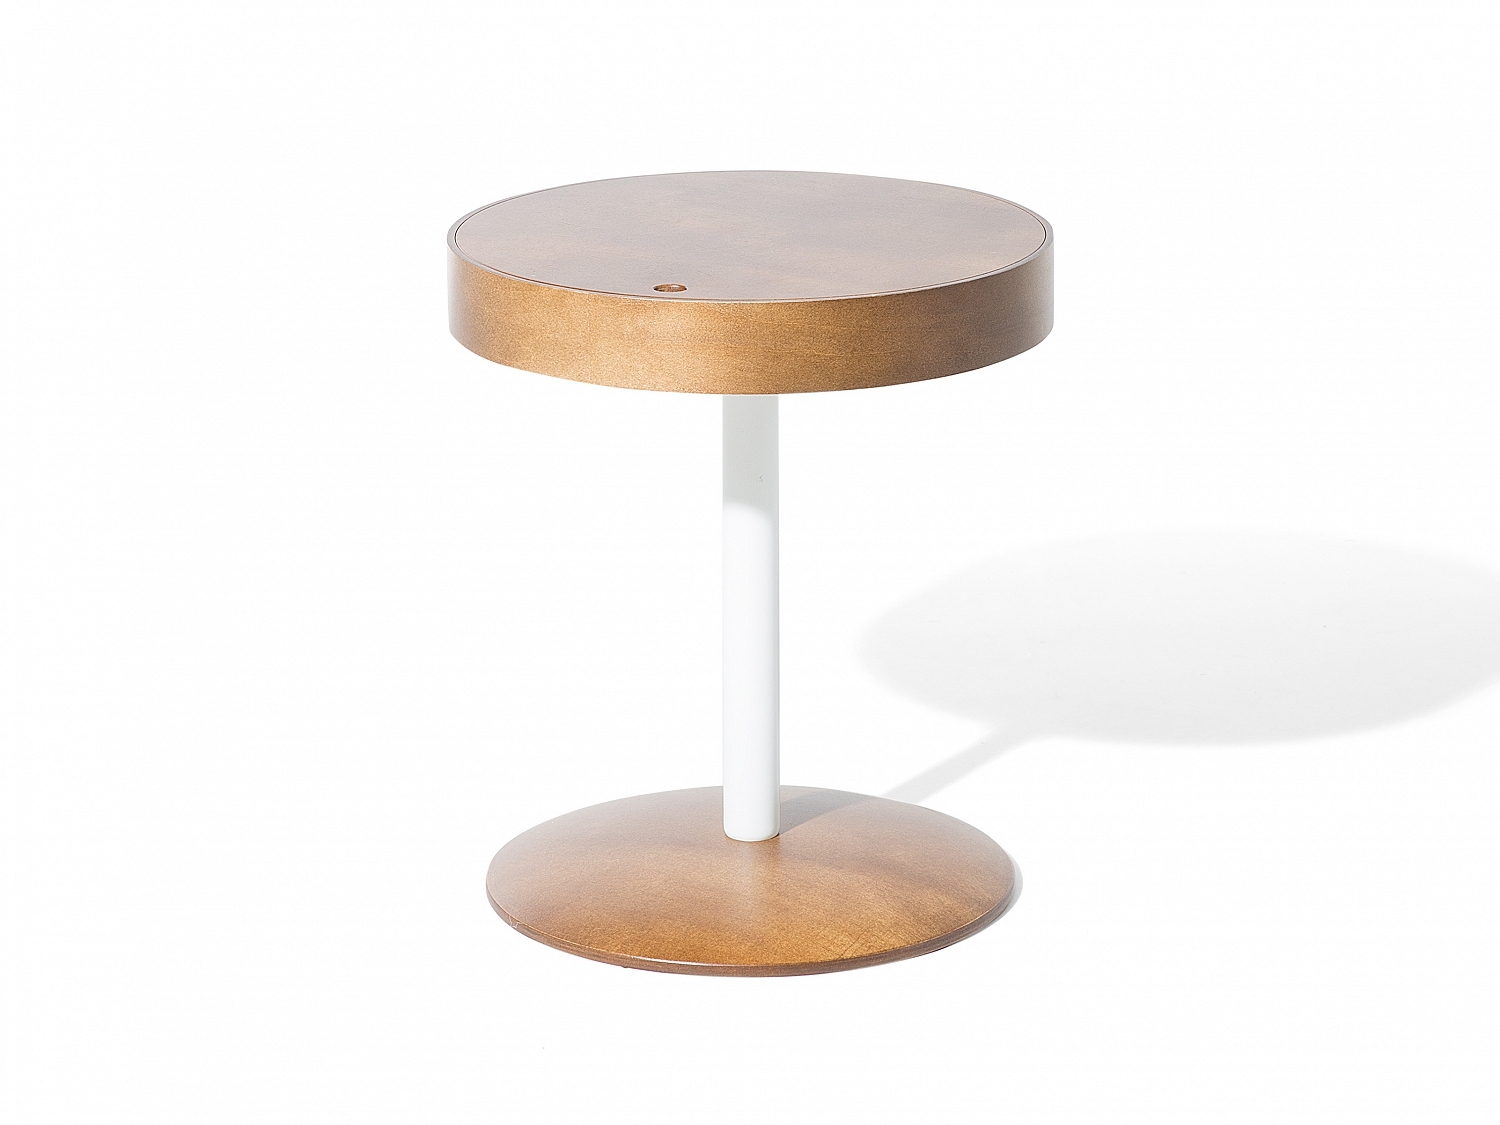 Table d appoint table basse ronde marron rangement - Table basse d appoint ...